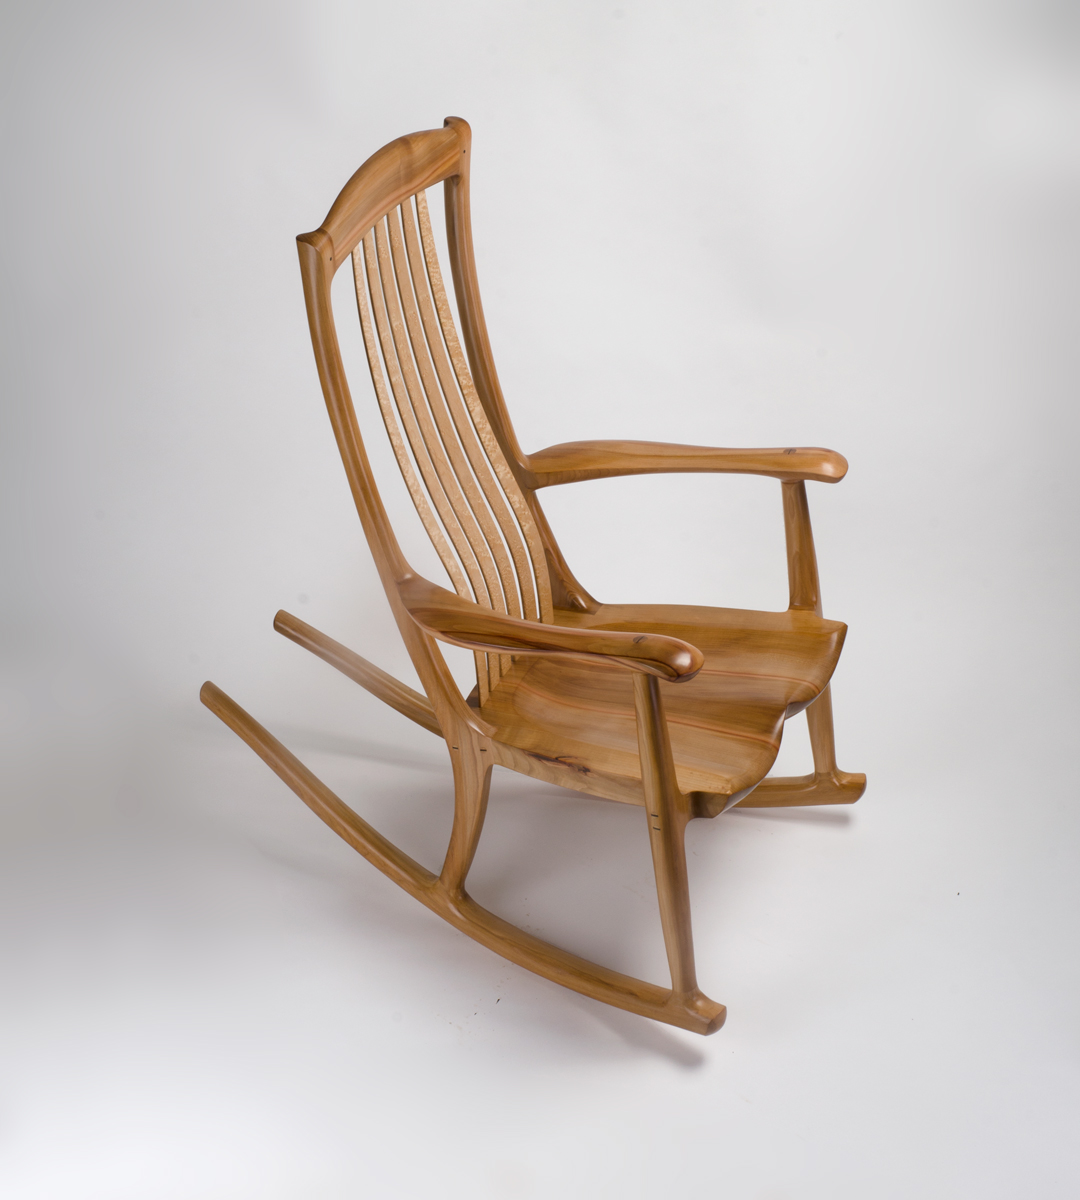 Our custom handmade rocking chair, The South Yuba Rocking Chair, in Pacific Madrone